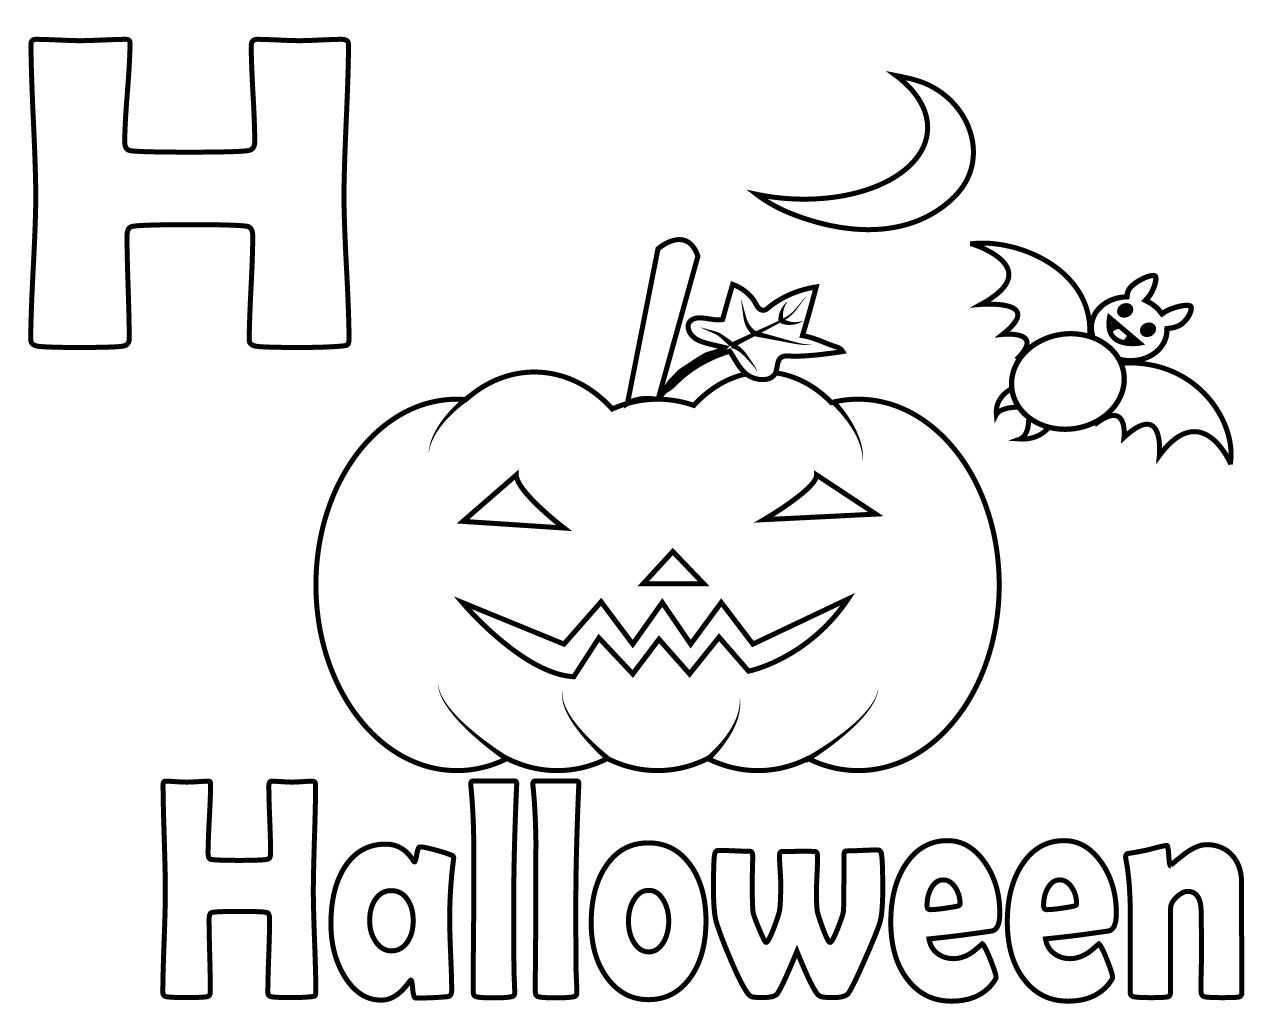 Free Printable Letter H Coloring Pages Free Printable Letters Coloring Pages Printable Letters